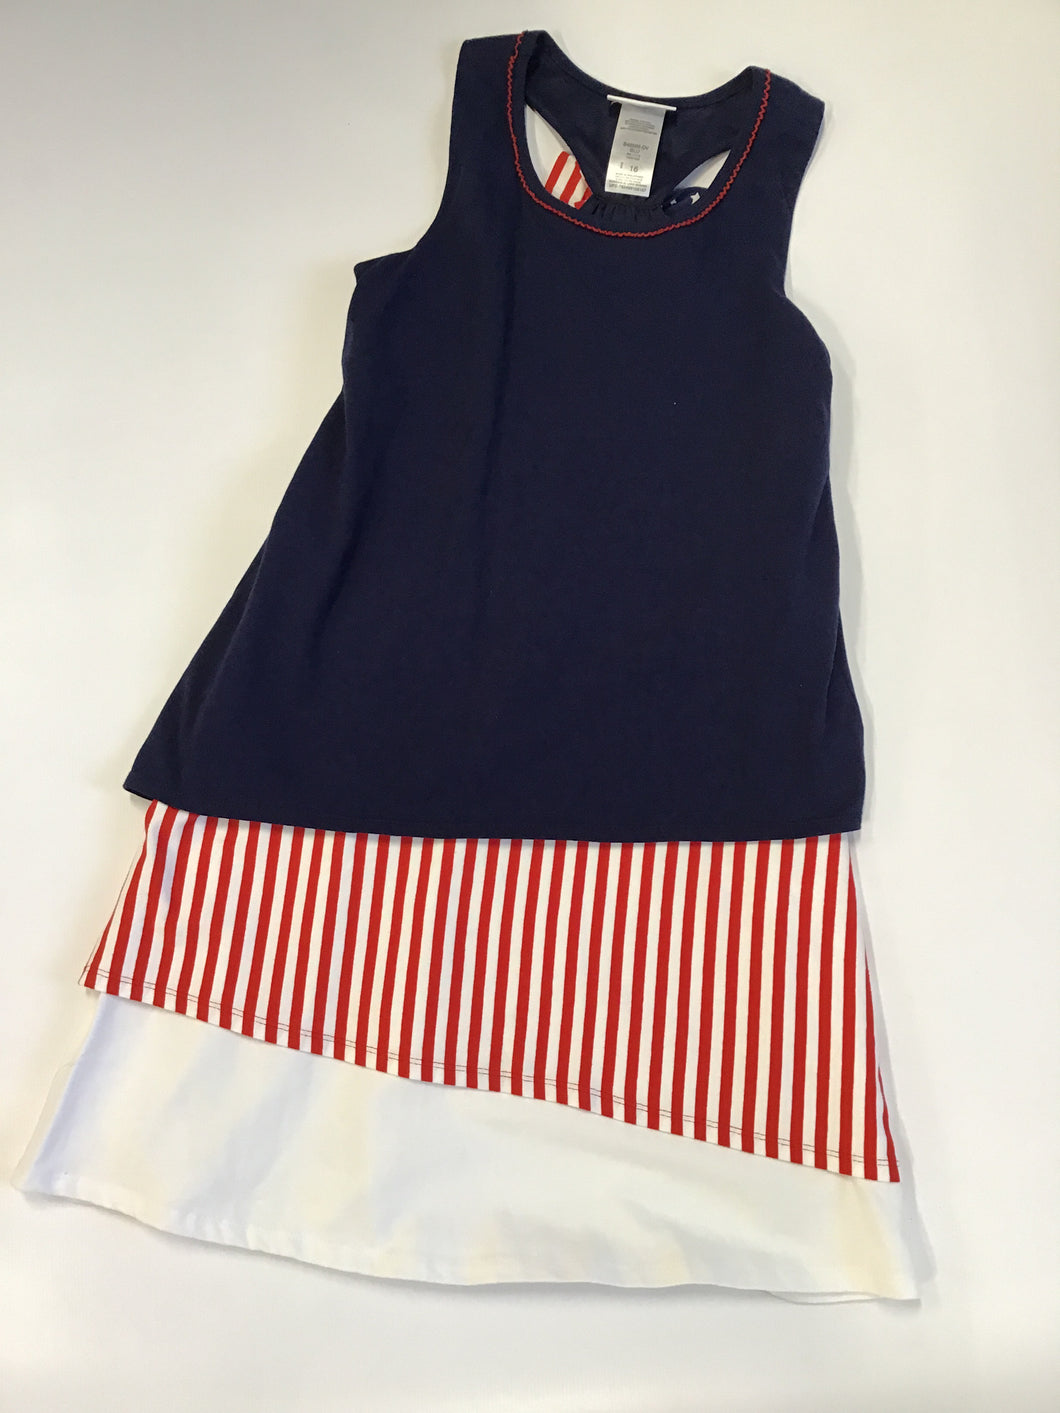 Bonnie Jean Navy Dress with Red/White Stripes S49566-DV